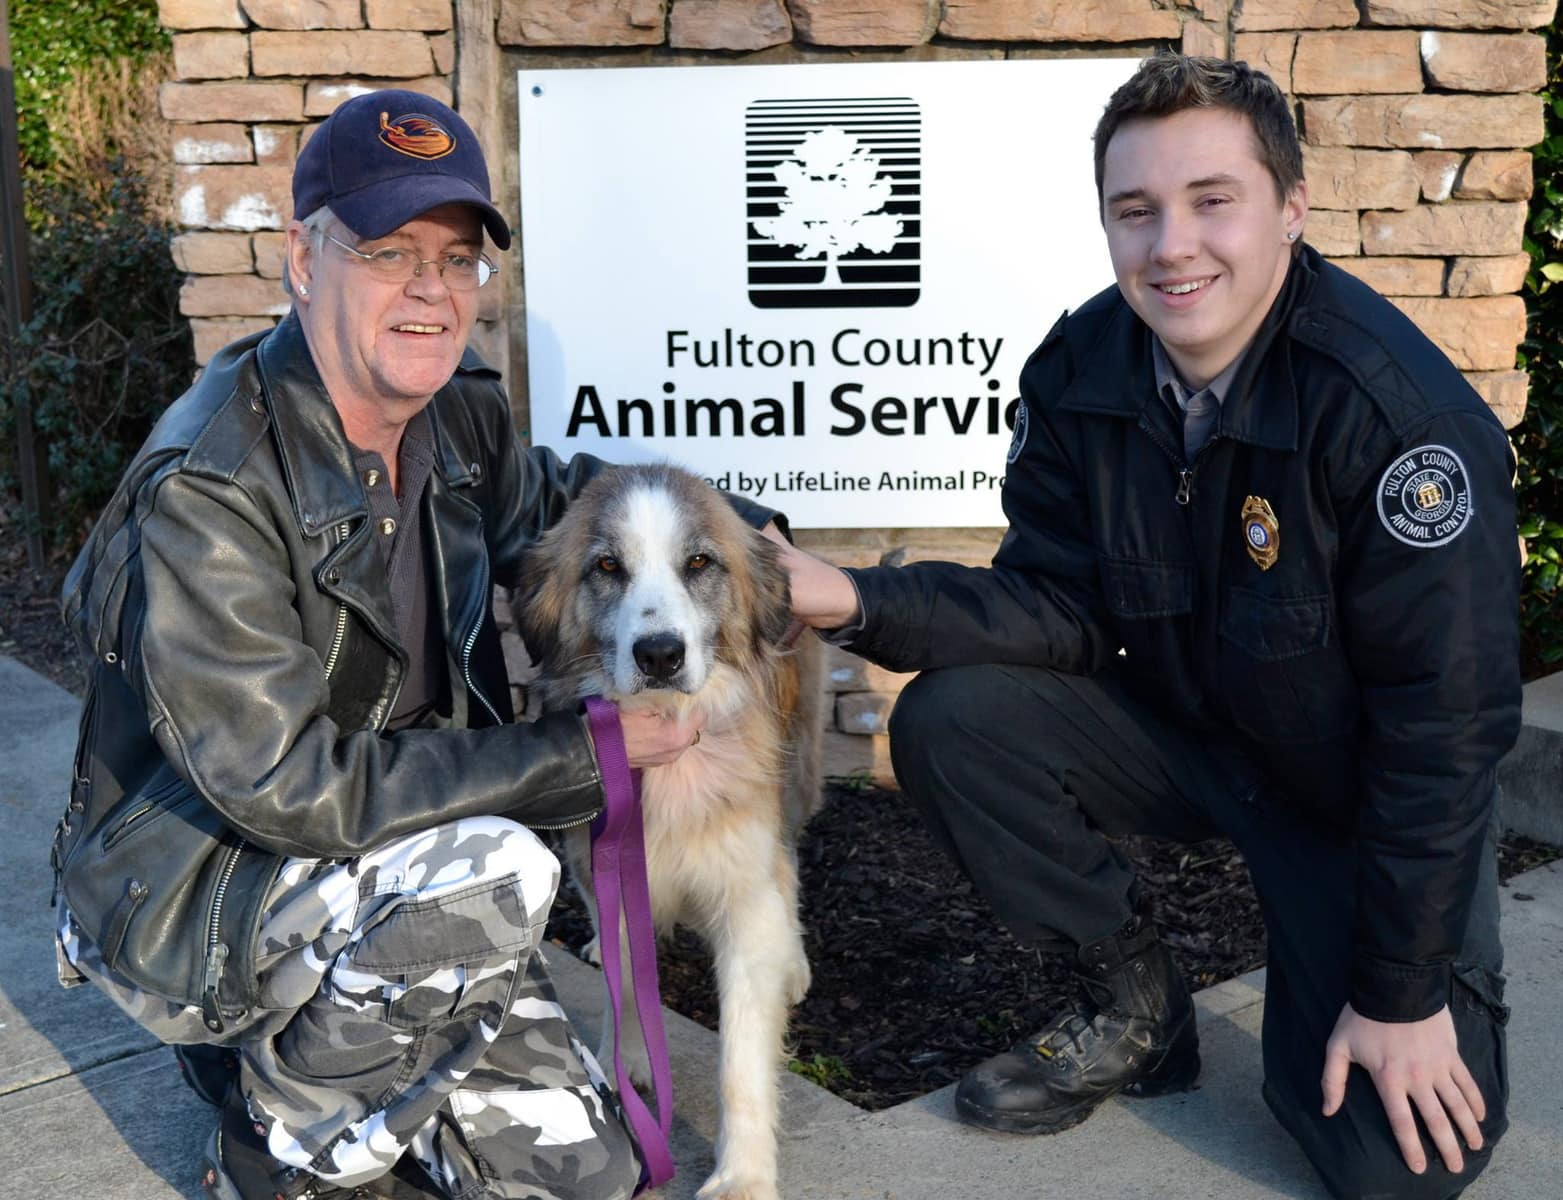 Dog Rescued from Flood Now in Forever Home